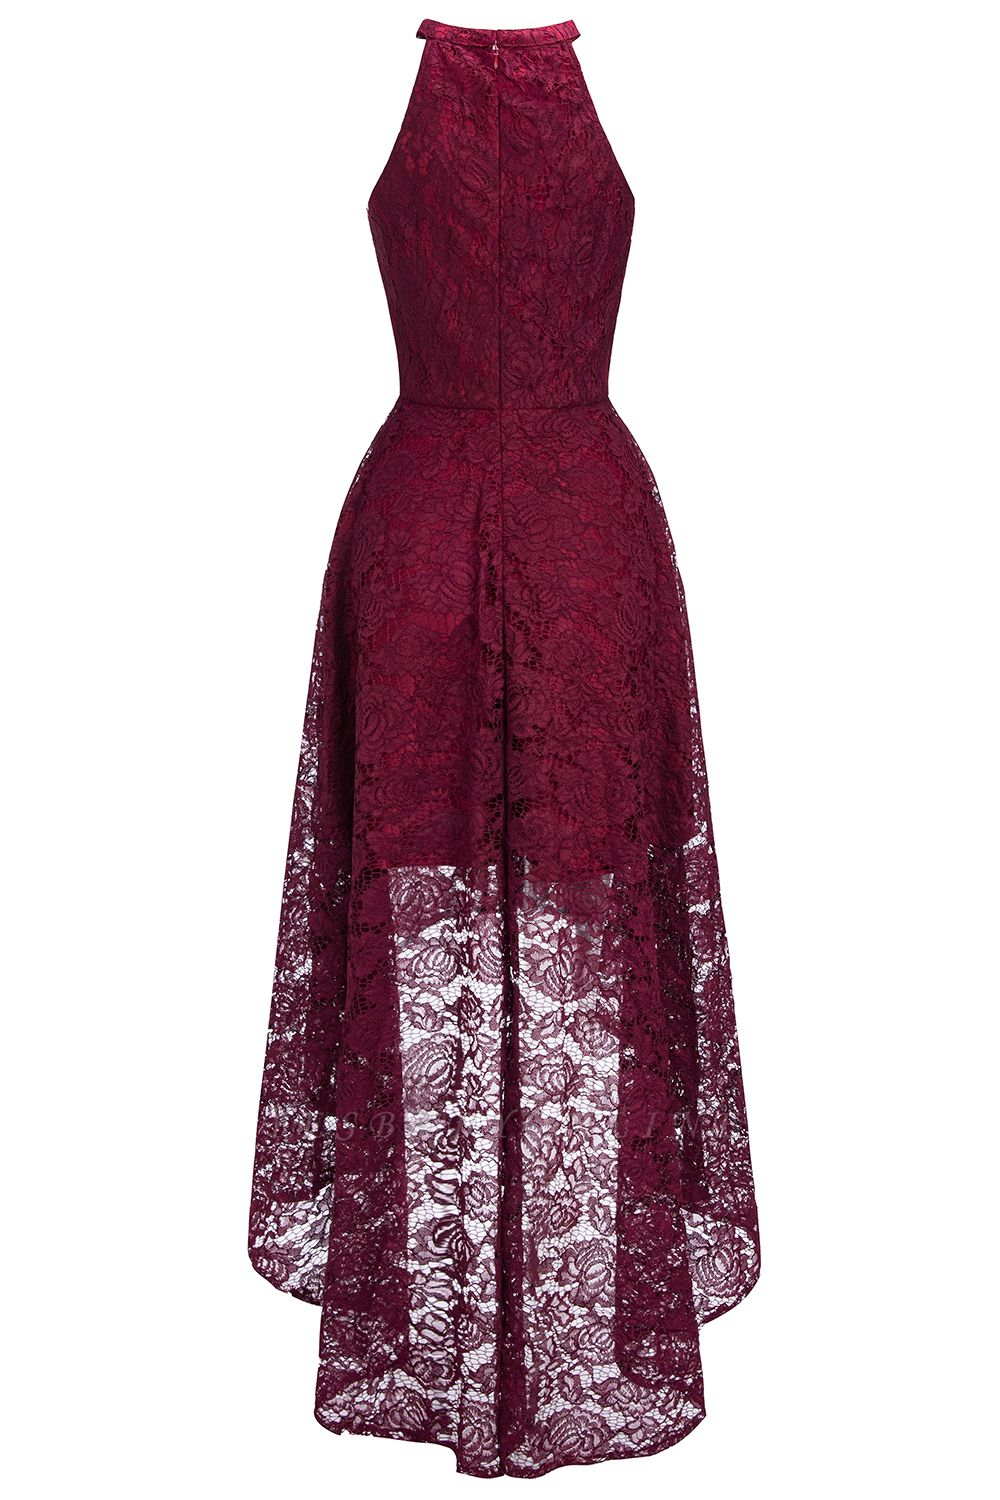 Cheap Halter Sleeveless Sheath Asymmetrical Burgundy Lace Dress in Stock